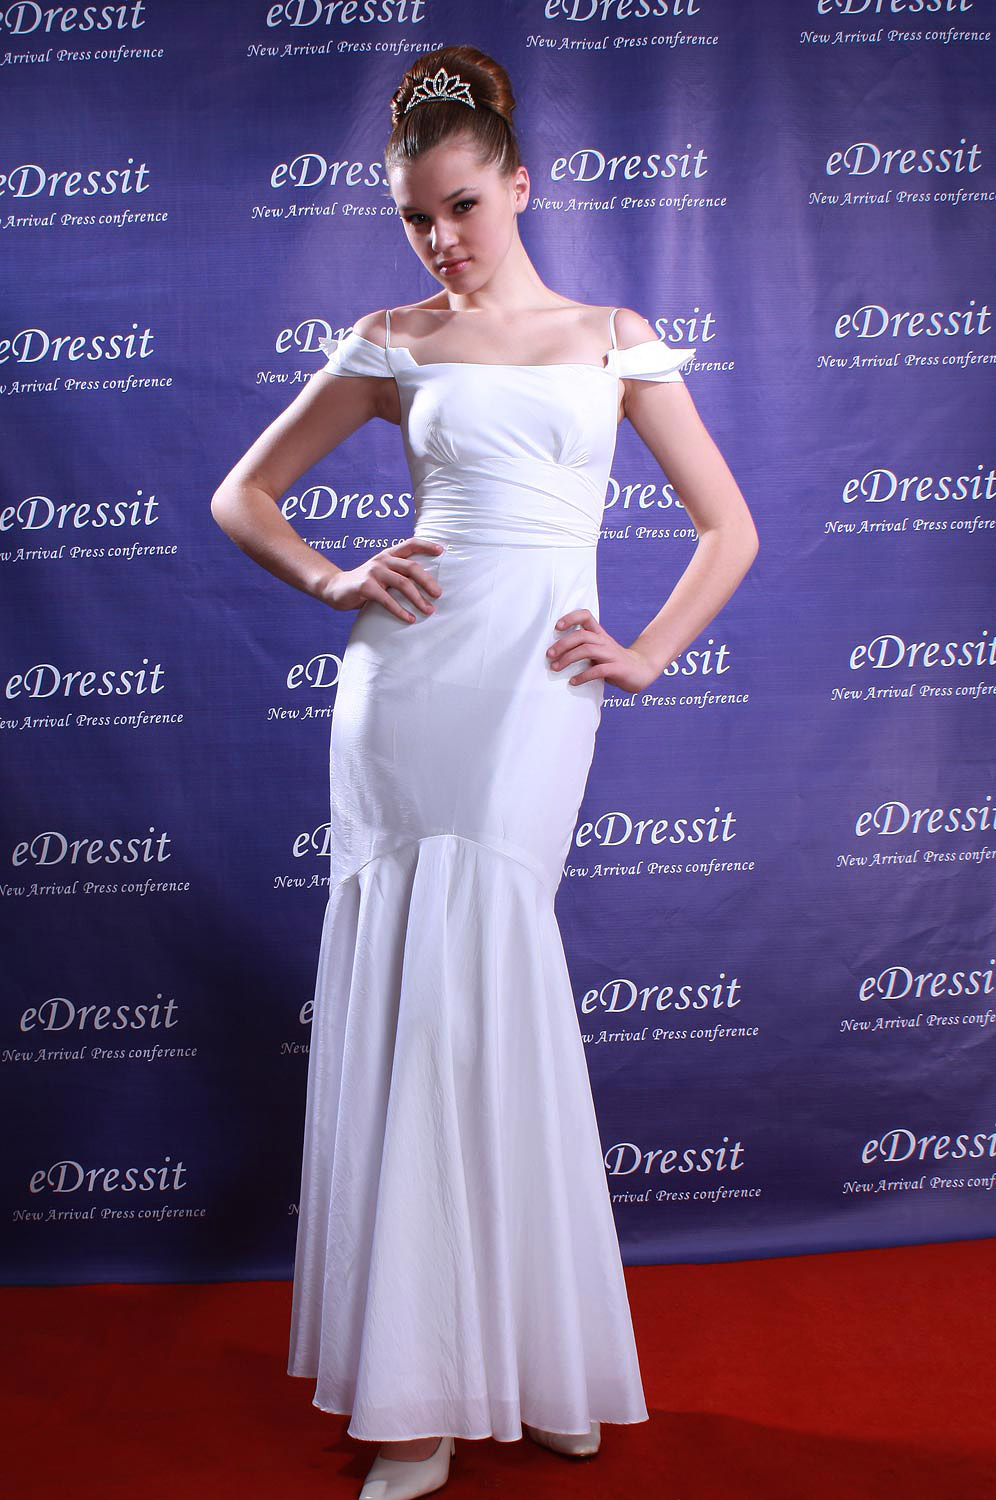 eDressit White Prom Gon/Evening Dress (02080207)